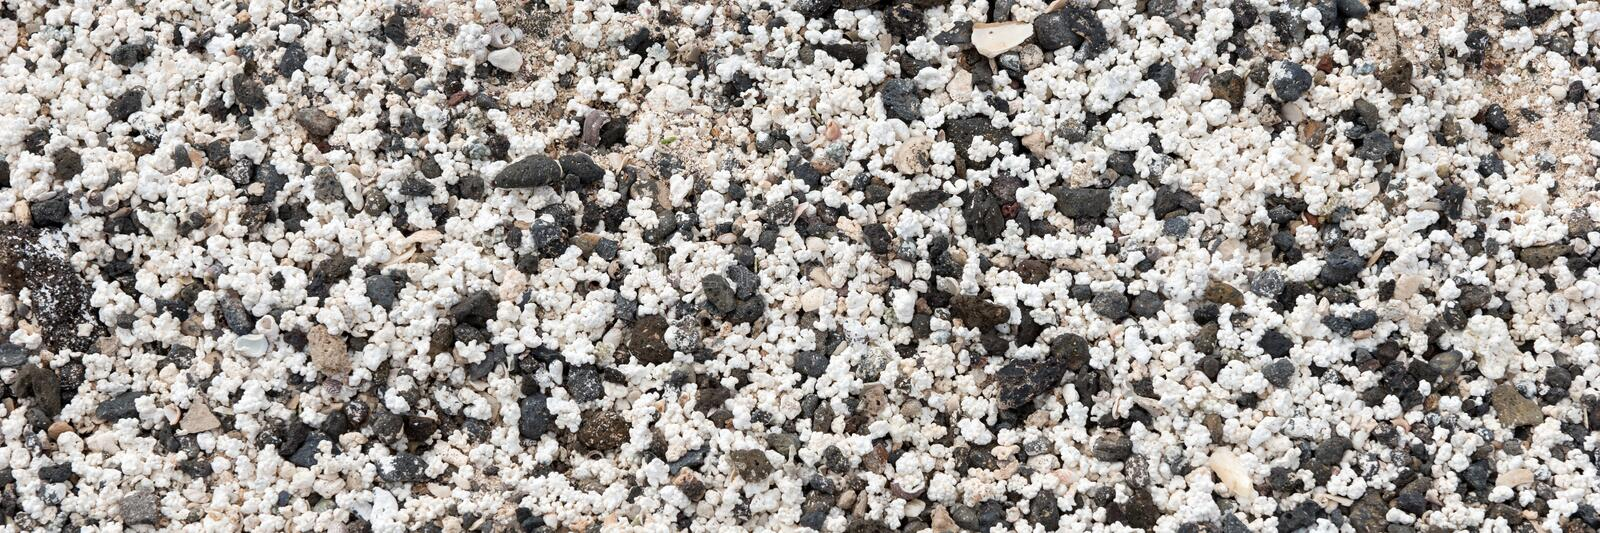 Black and white small pebbles stock photography